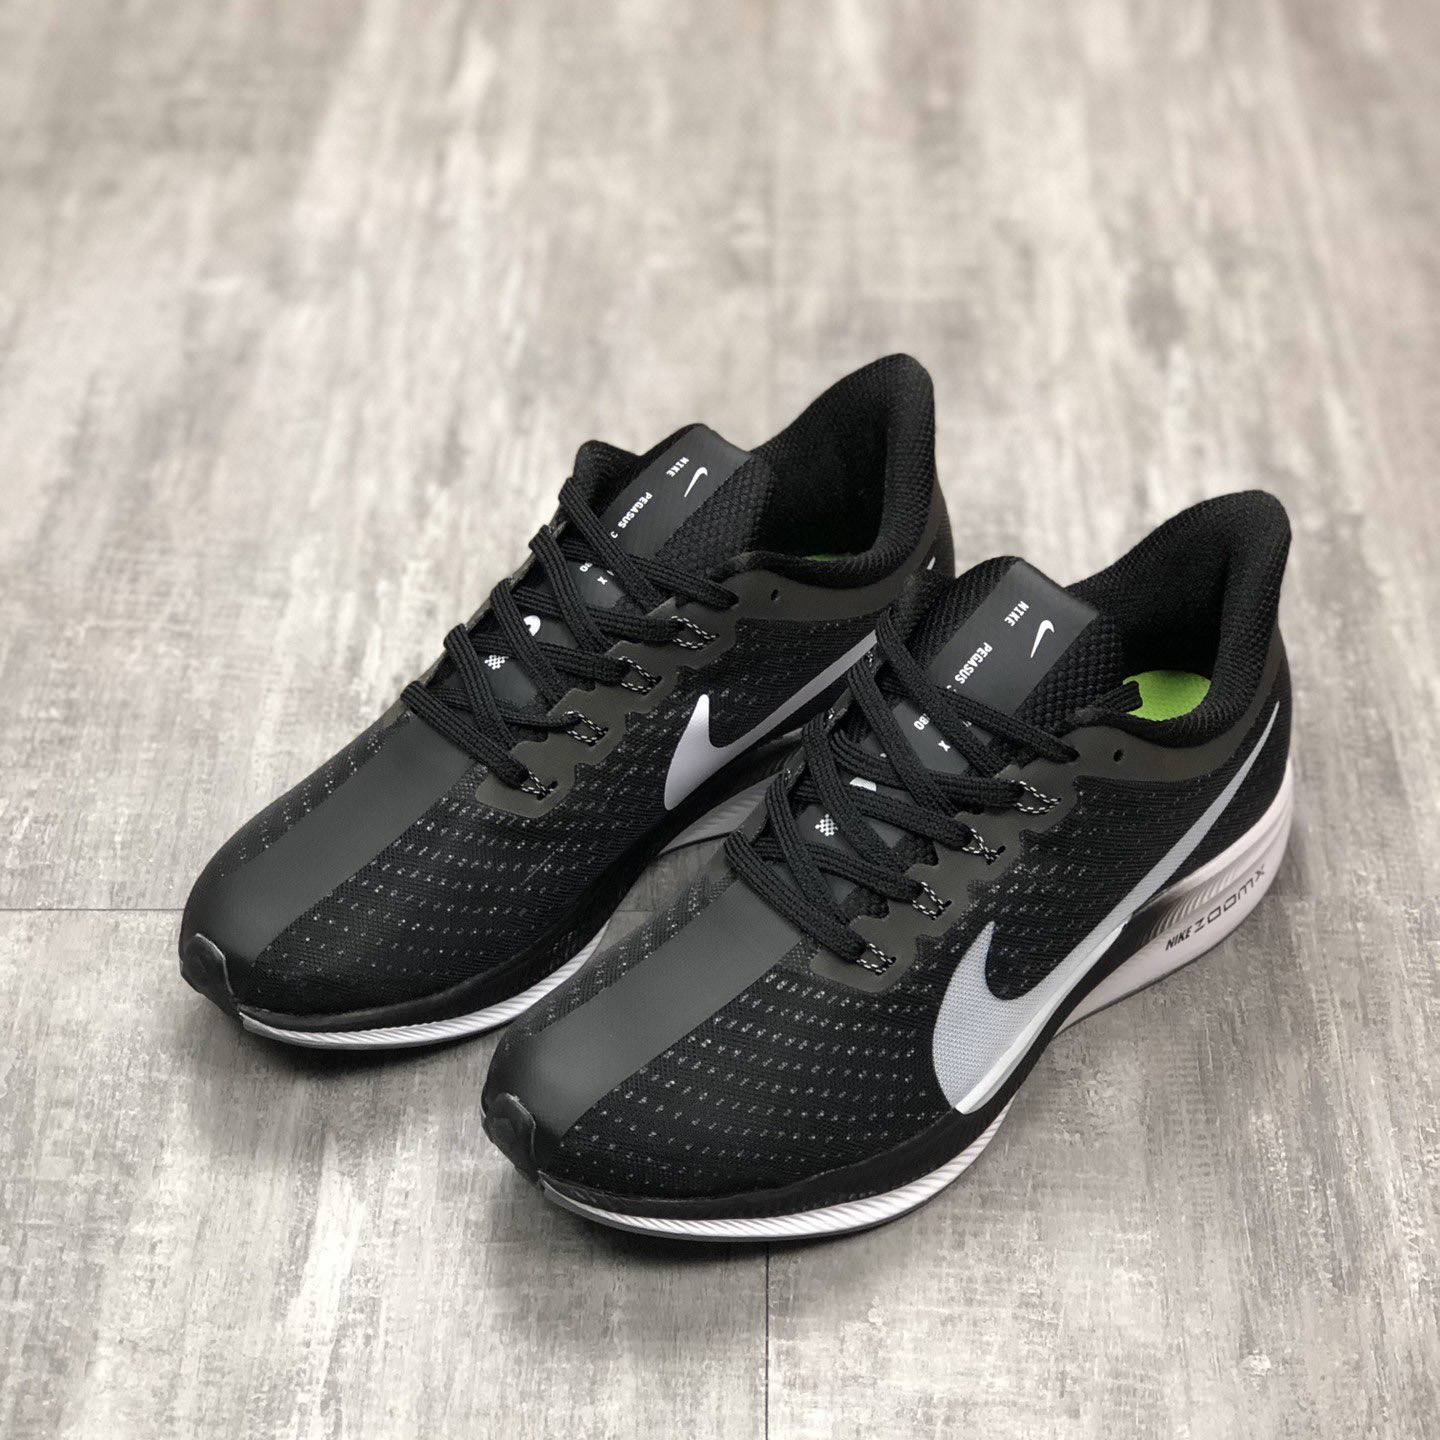 Nike Zoom Pegasus 35 Turbo Net Surface Breathable Men Running Shoes Women Casual Lovers Slow Running Shoes.